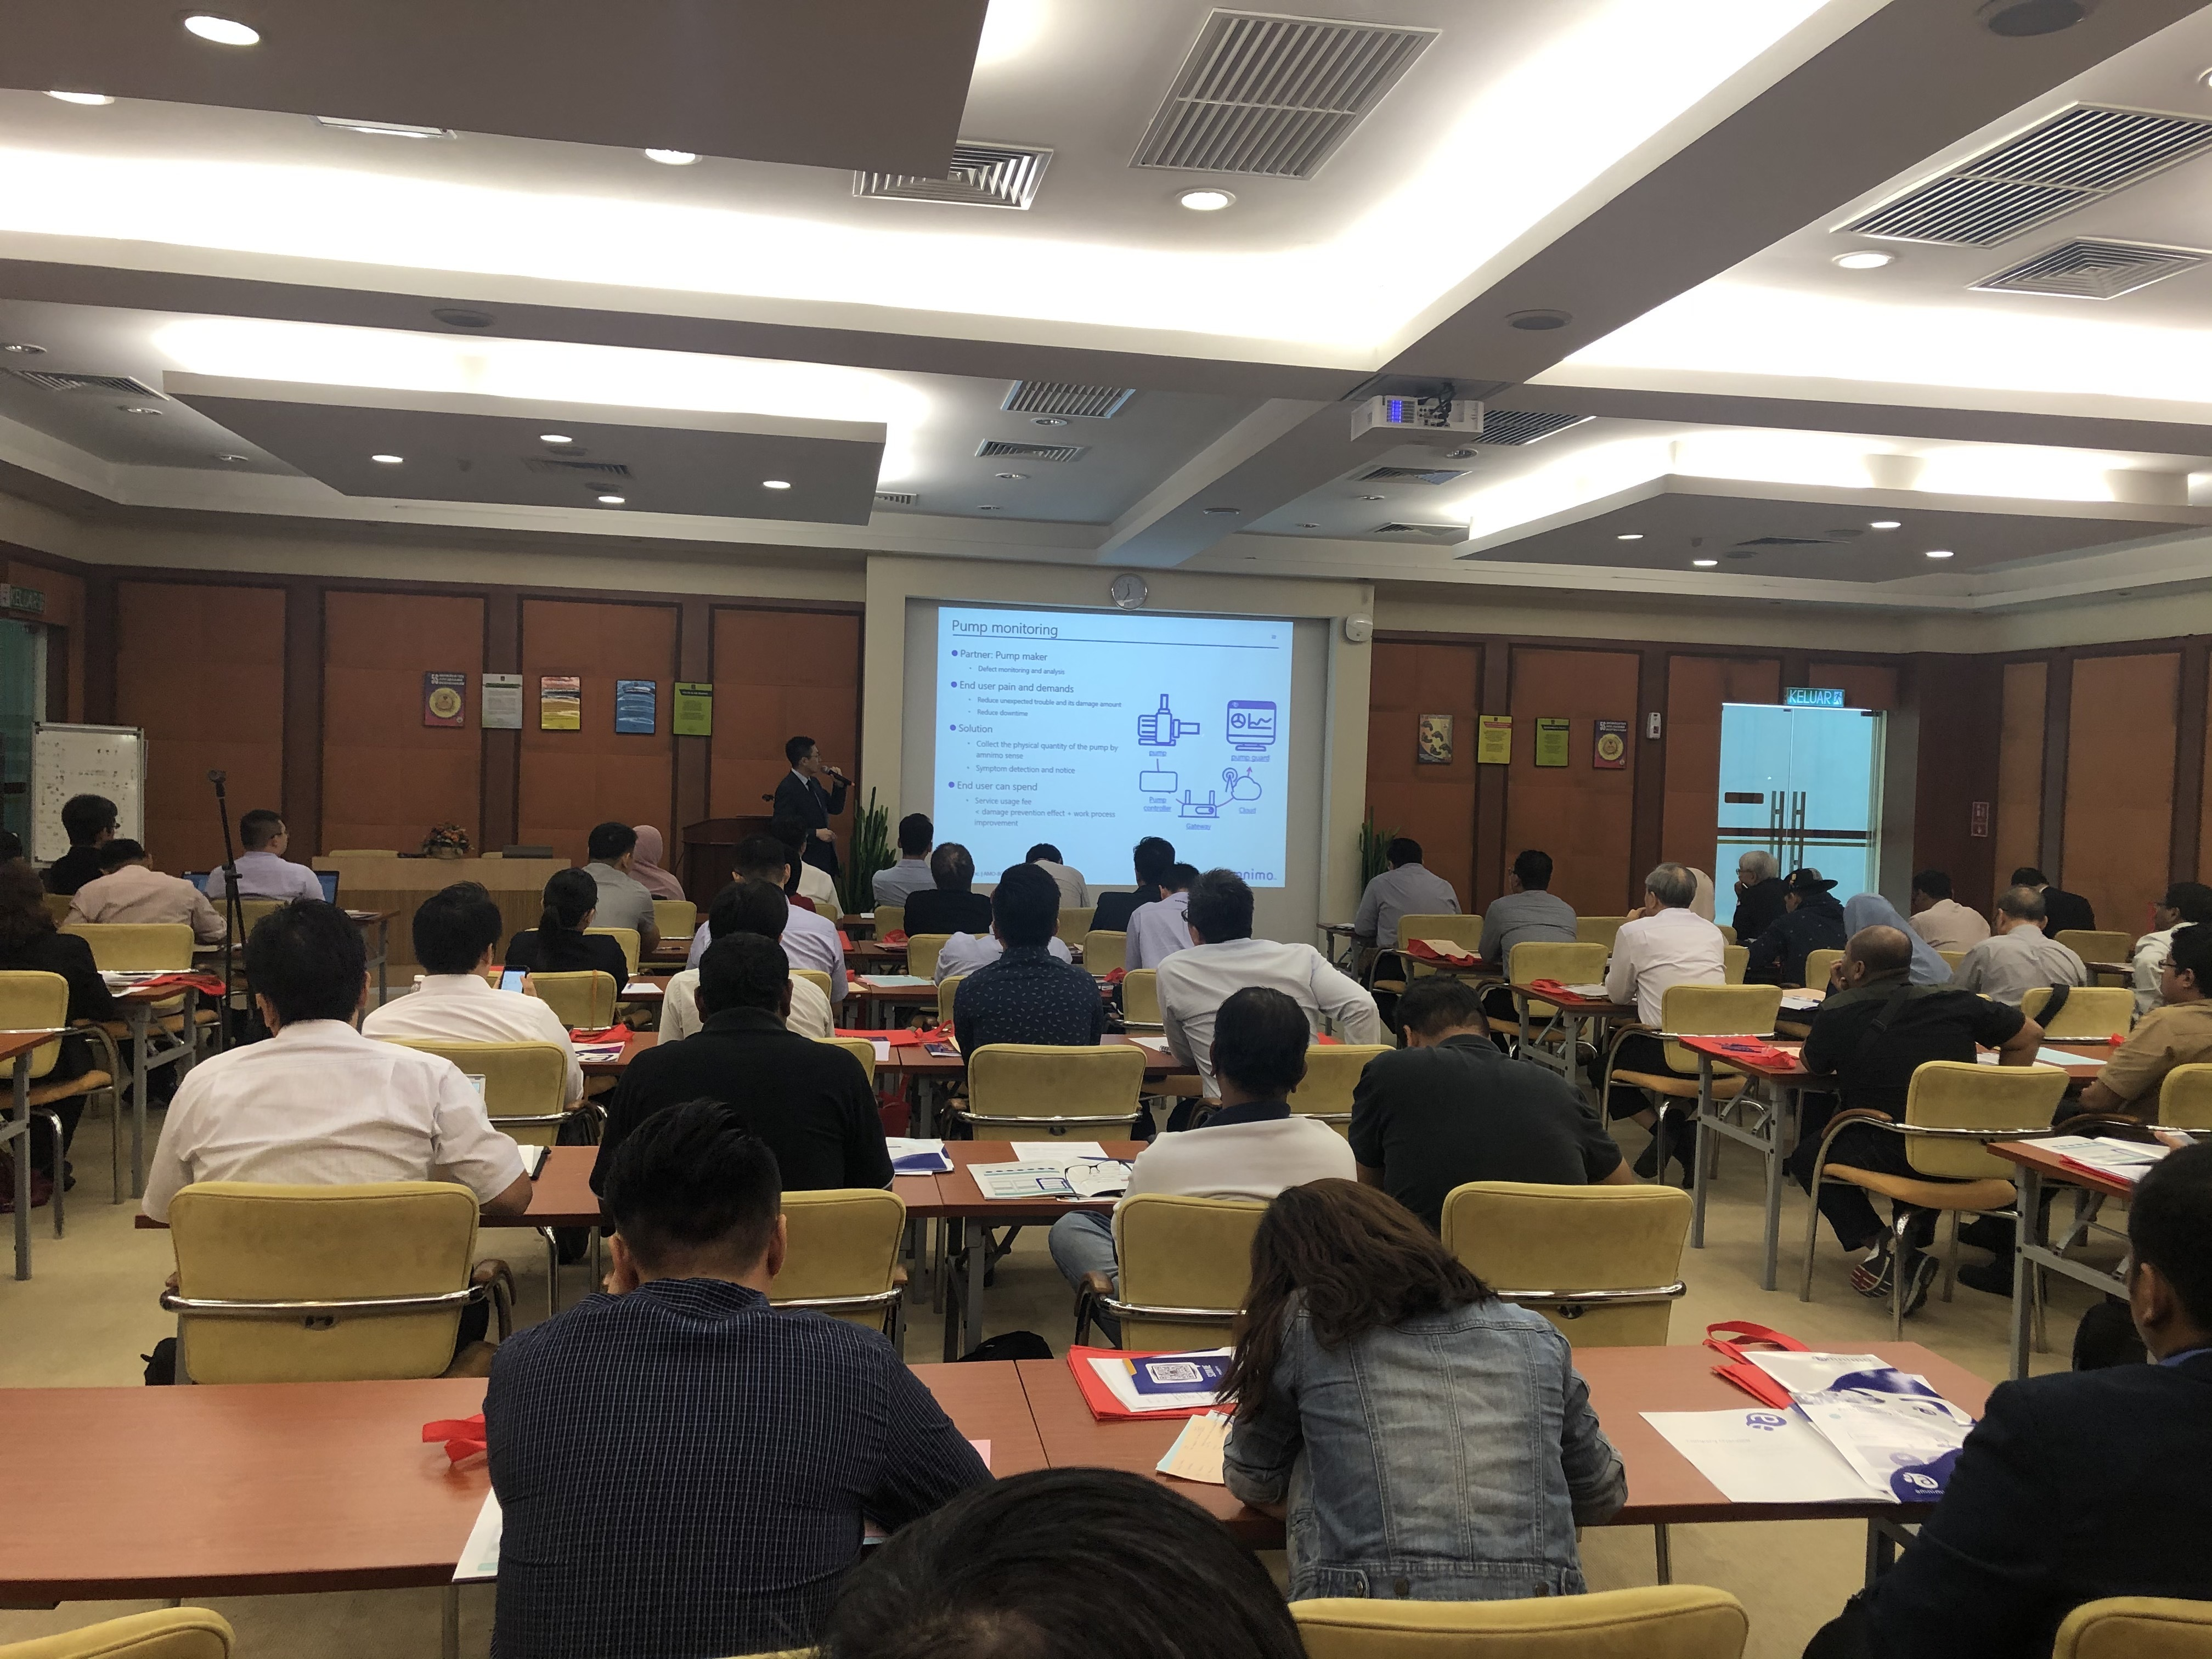 「LAUNCHING OF MALAYSIA - JAPAN COLLABORATION ON SMART MANUFACTURING & INAUGURAL SEMINAR」